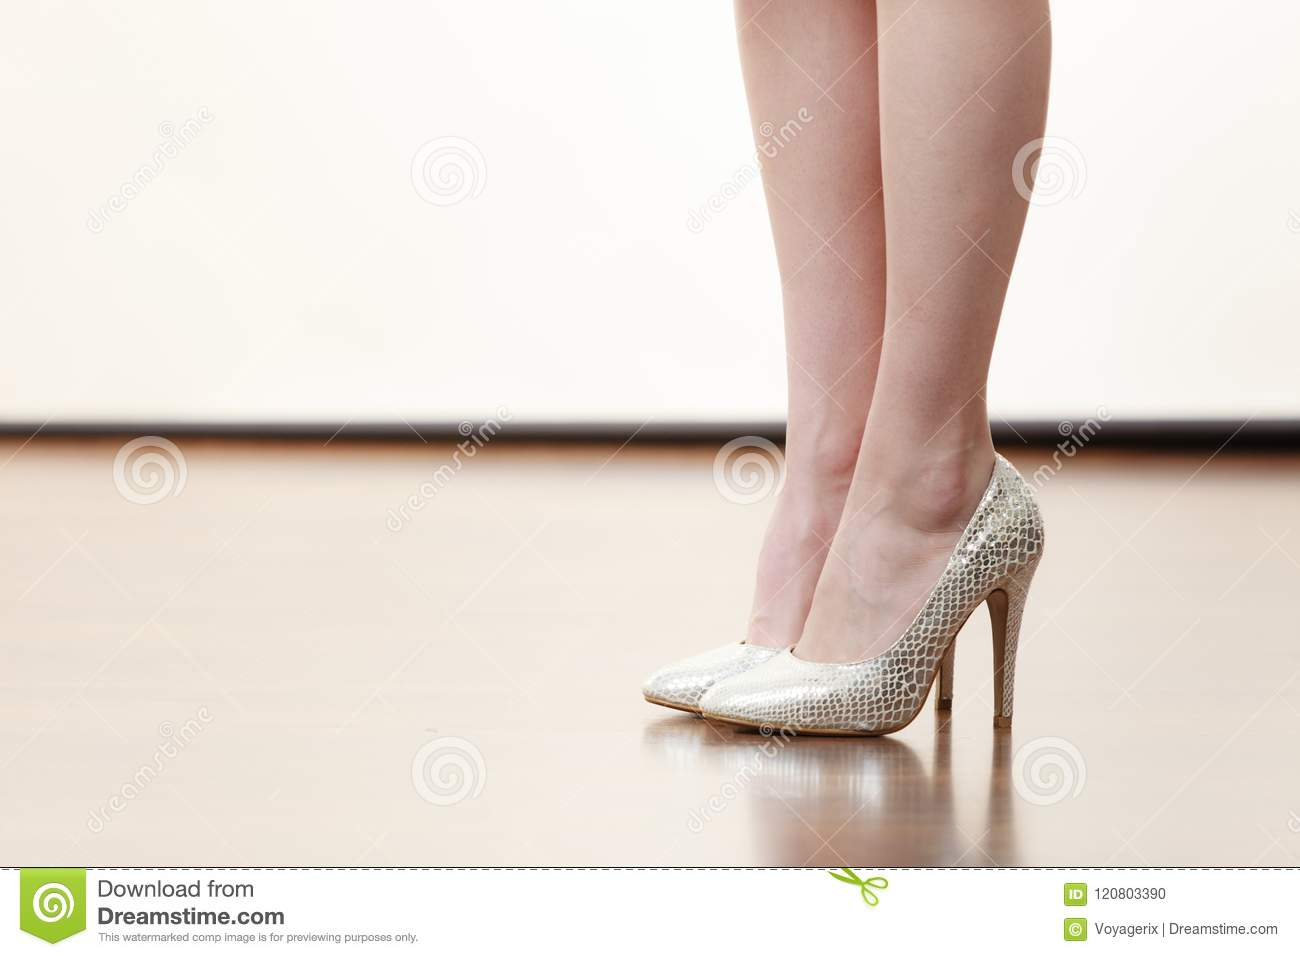 Shaved high heels the purpose